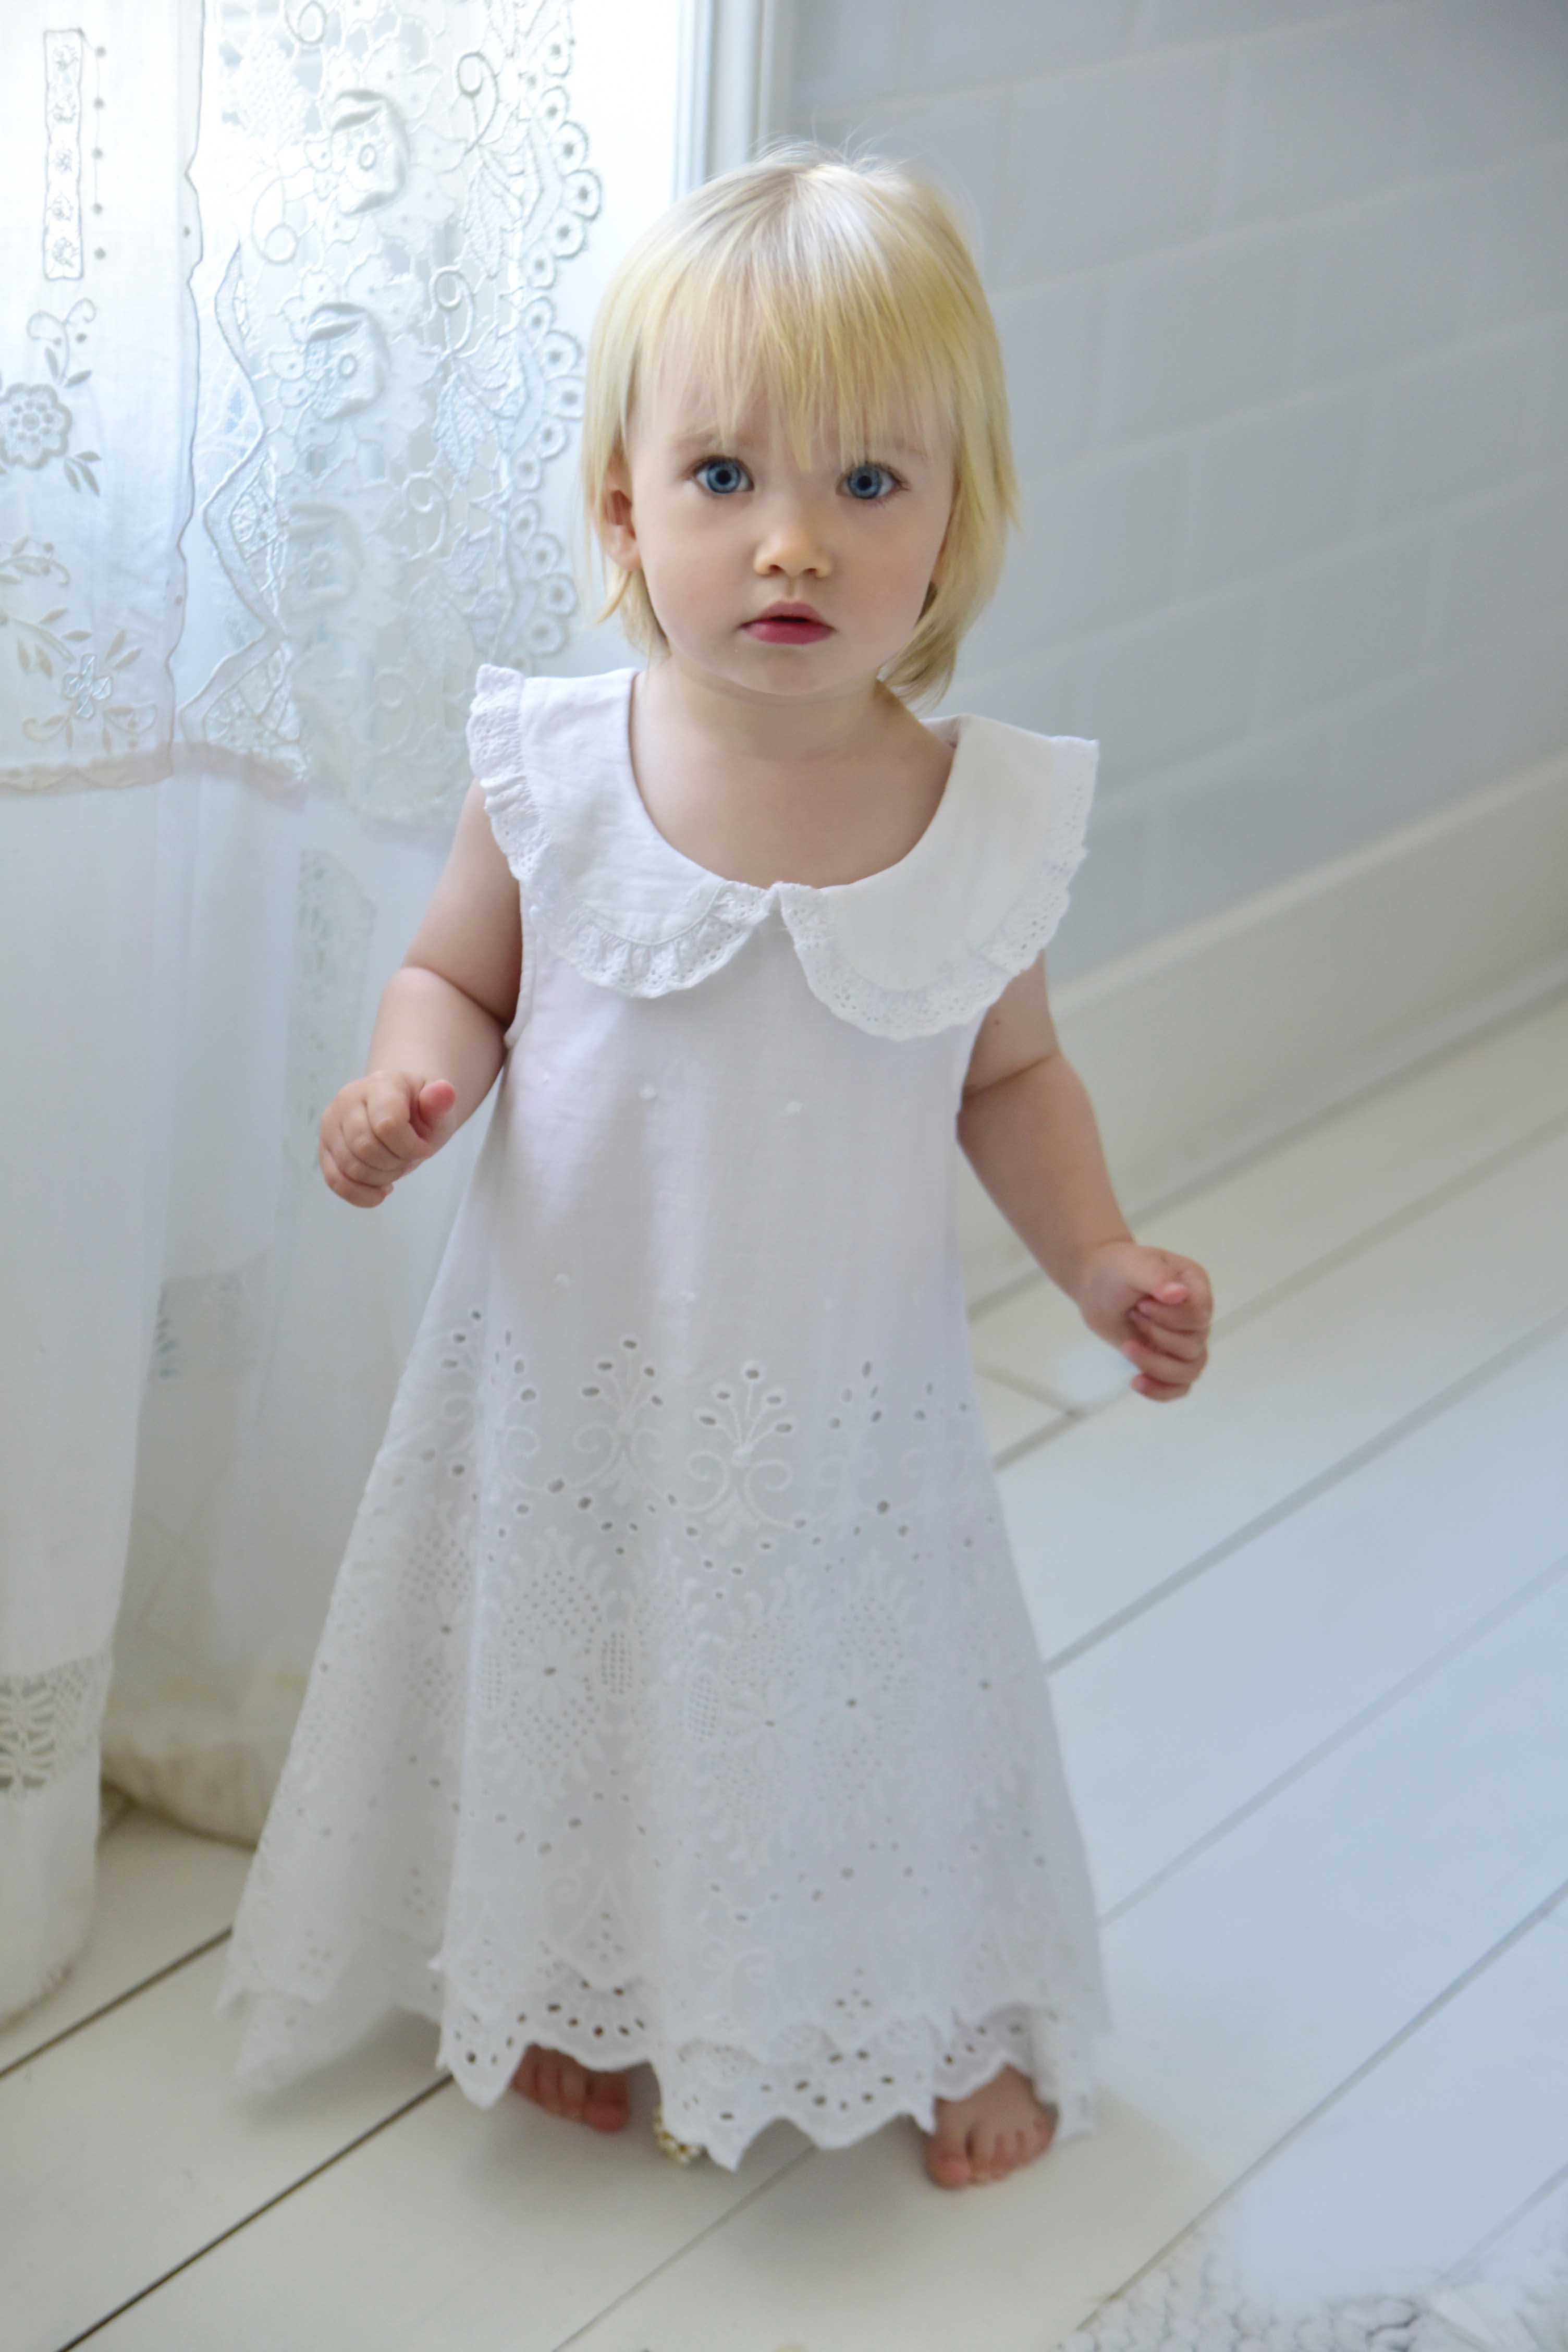 Toddler Portraits, Childrens fashion Photography, Eclectic Photography, Brighton, Sussex